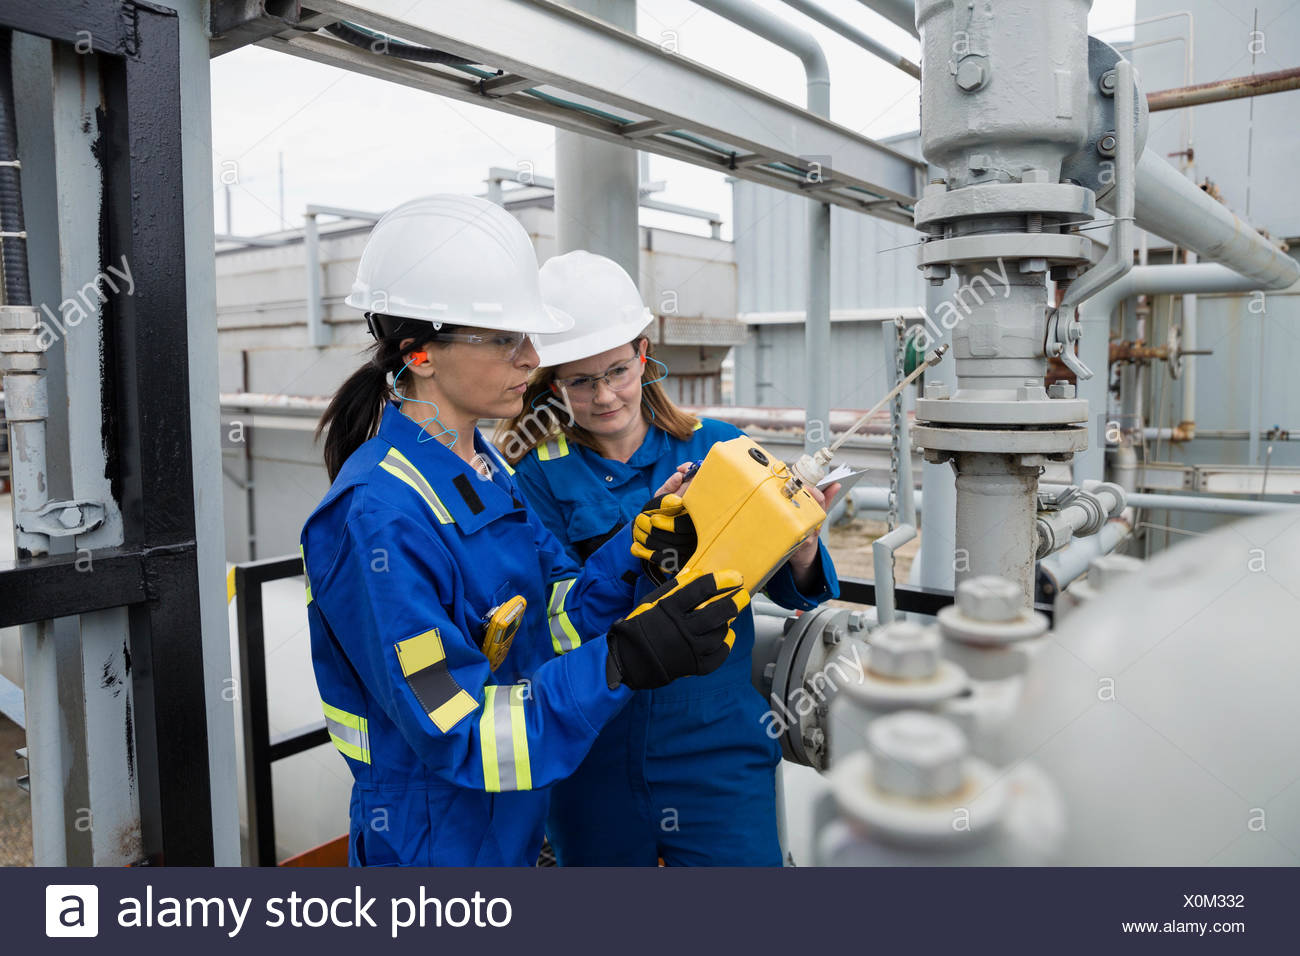 Female workers checking equipment at gas plant - Stock Image